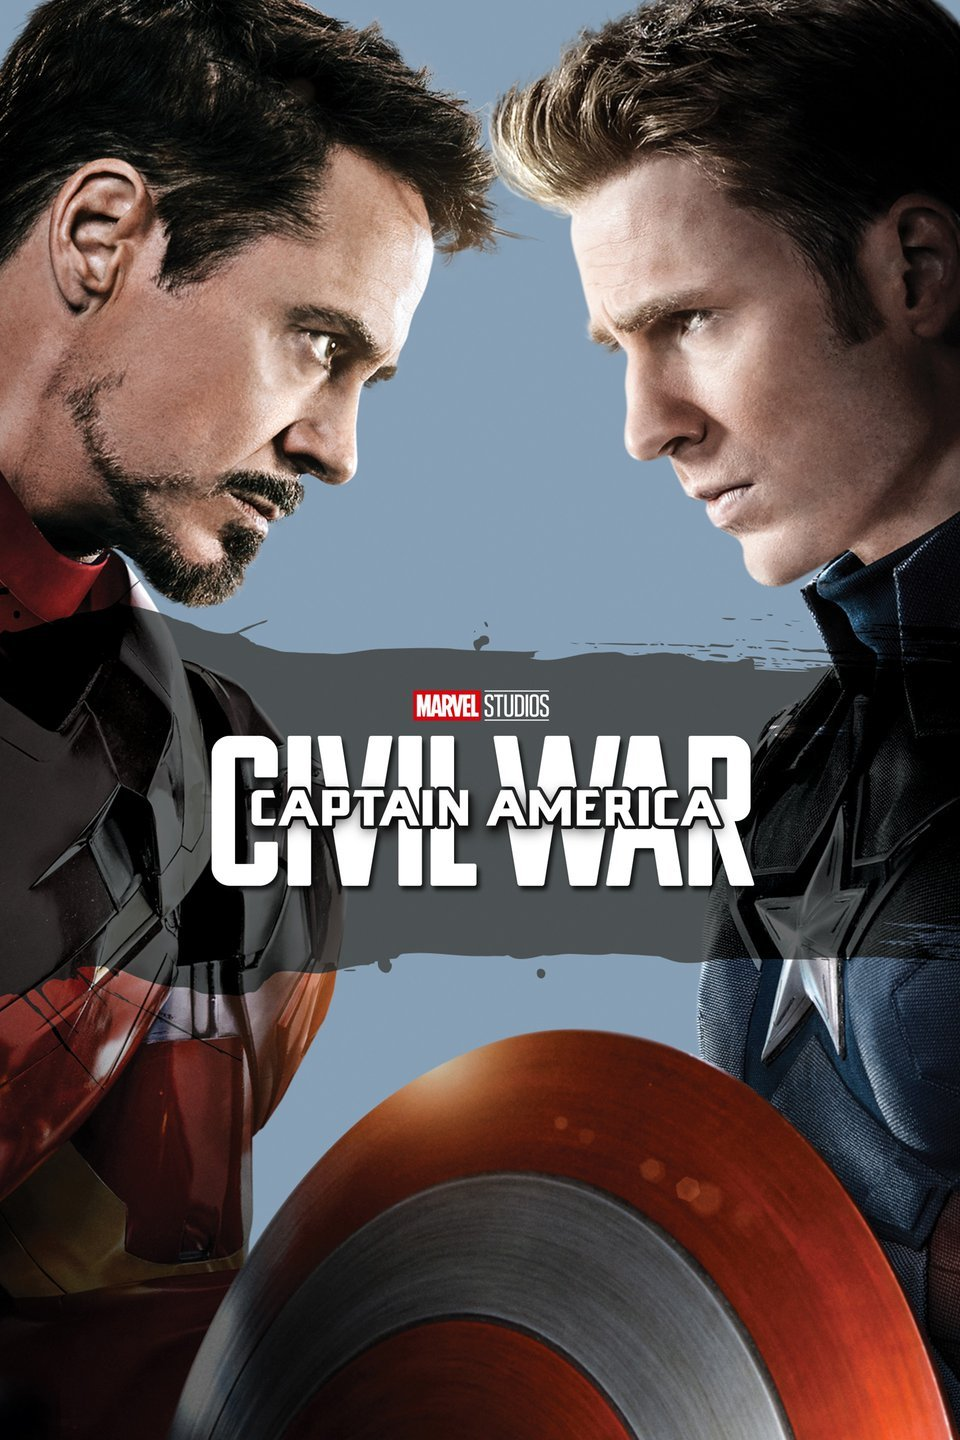 Marvel Studios: Captain America: Civil War